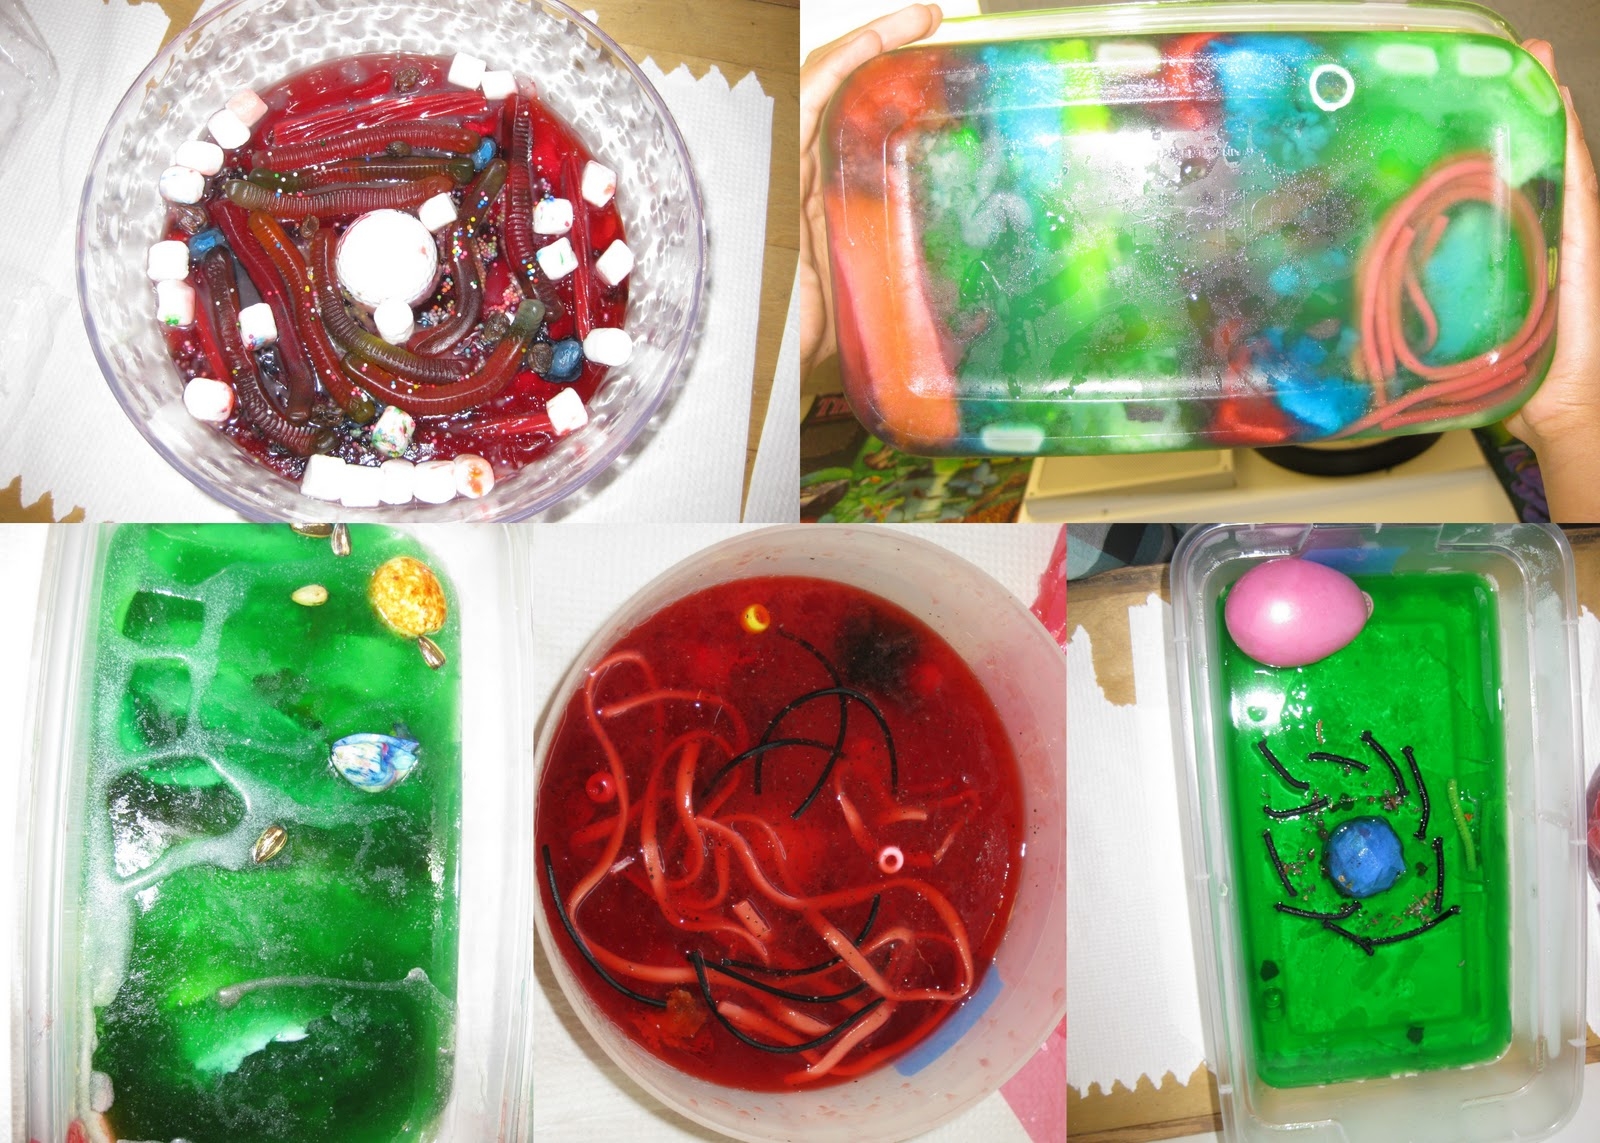 Jello Edible Plant Cell Projects http://mrskoehnke.blogspot.com/2011/04/6th-grade-jello-cell-project_605.html